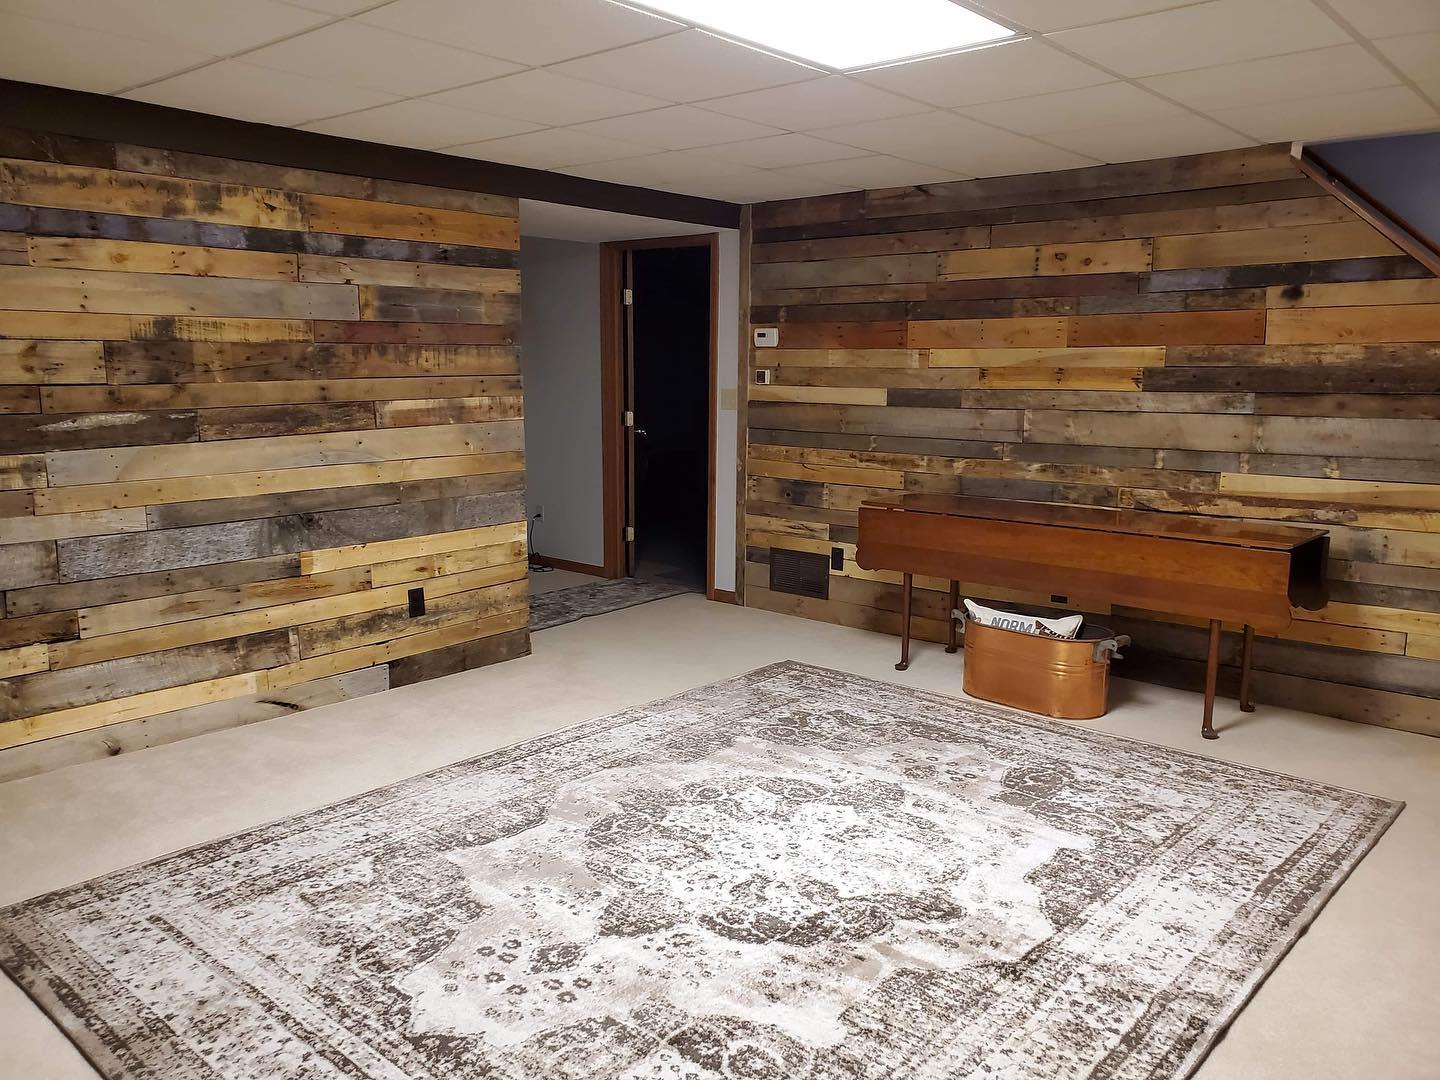 Interior Pallet Wall Ideas -redfoxreclaiming